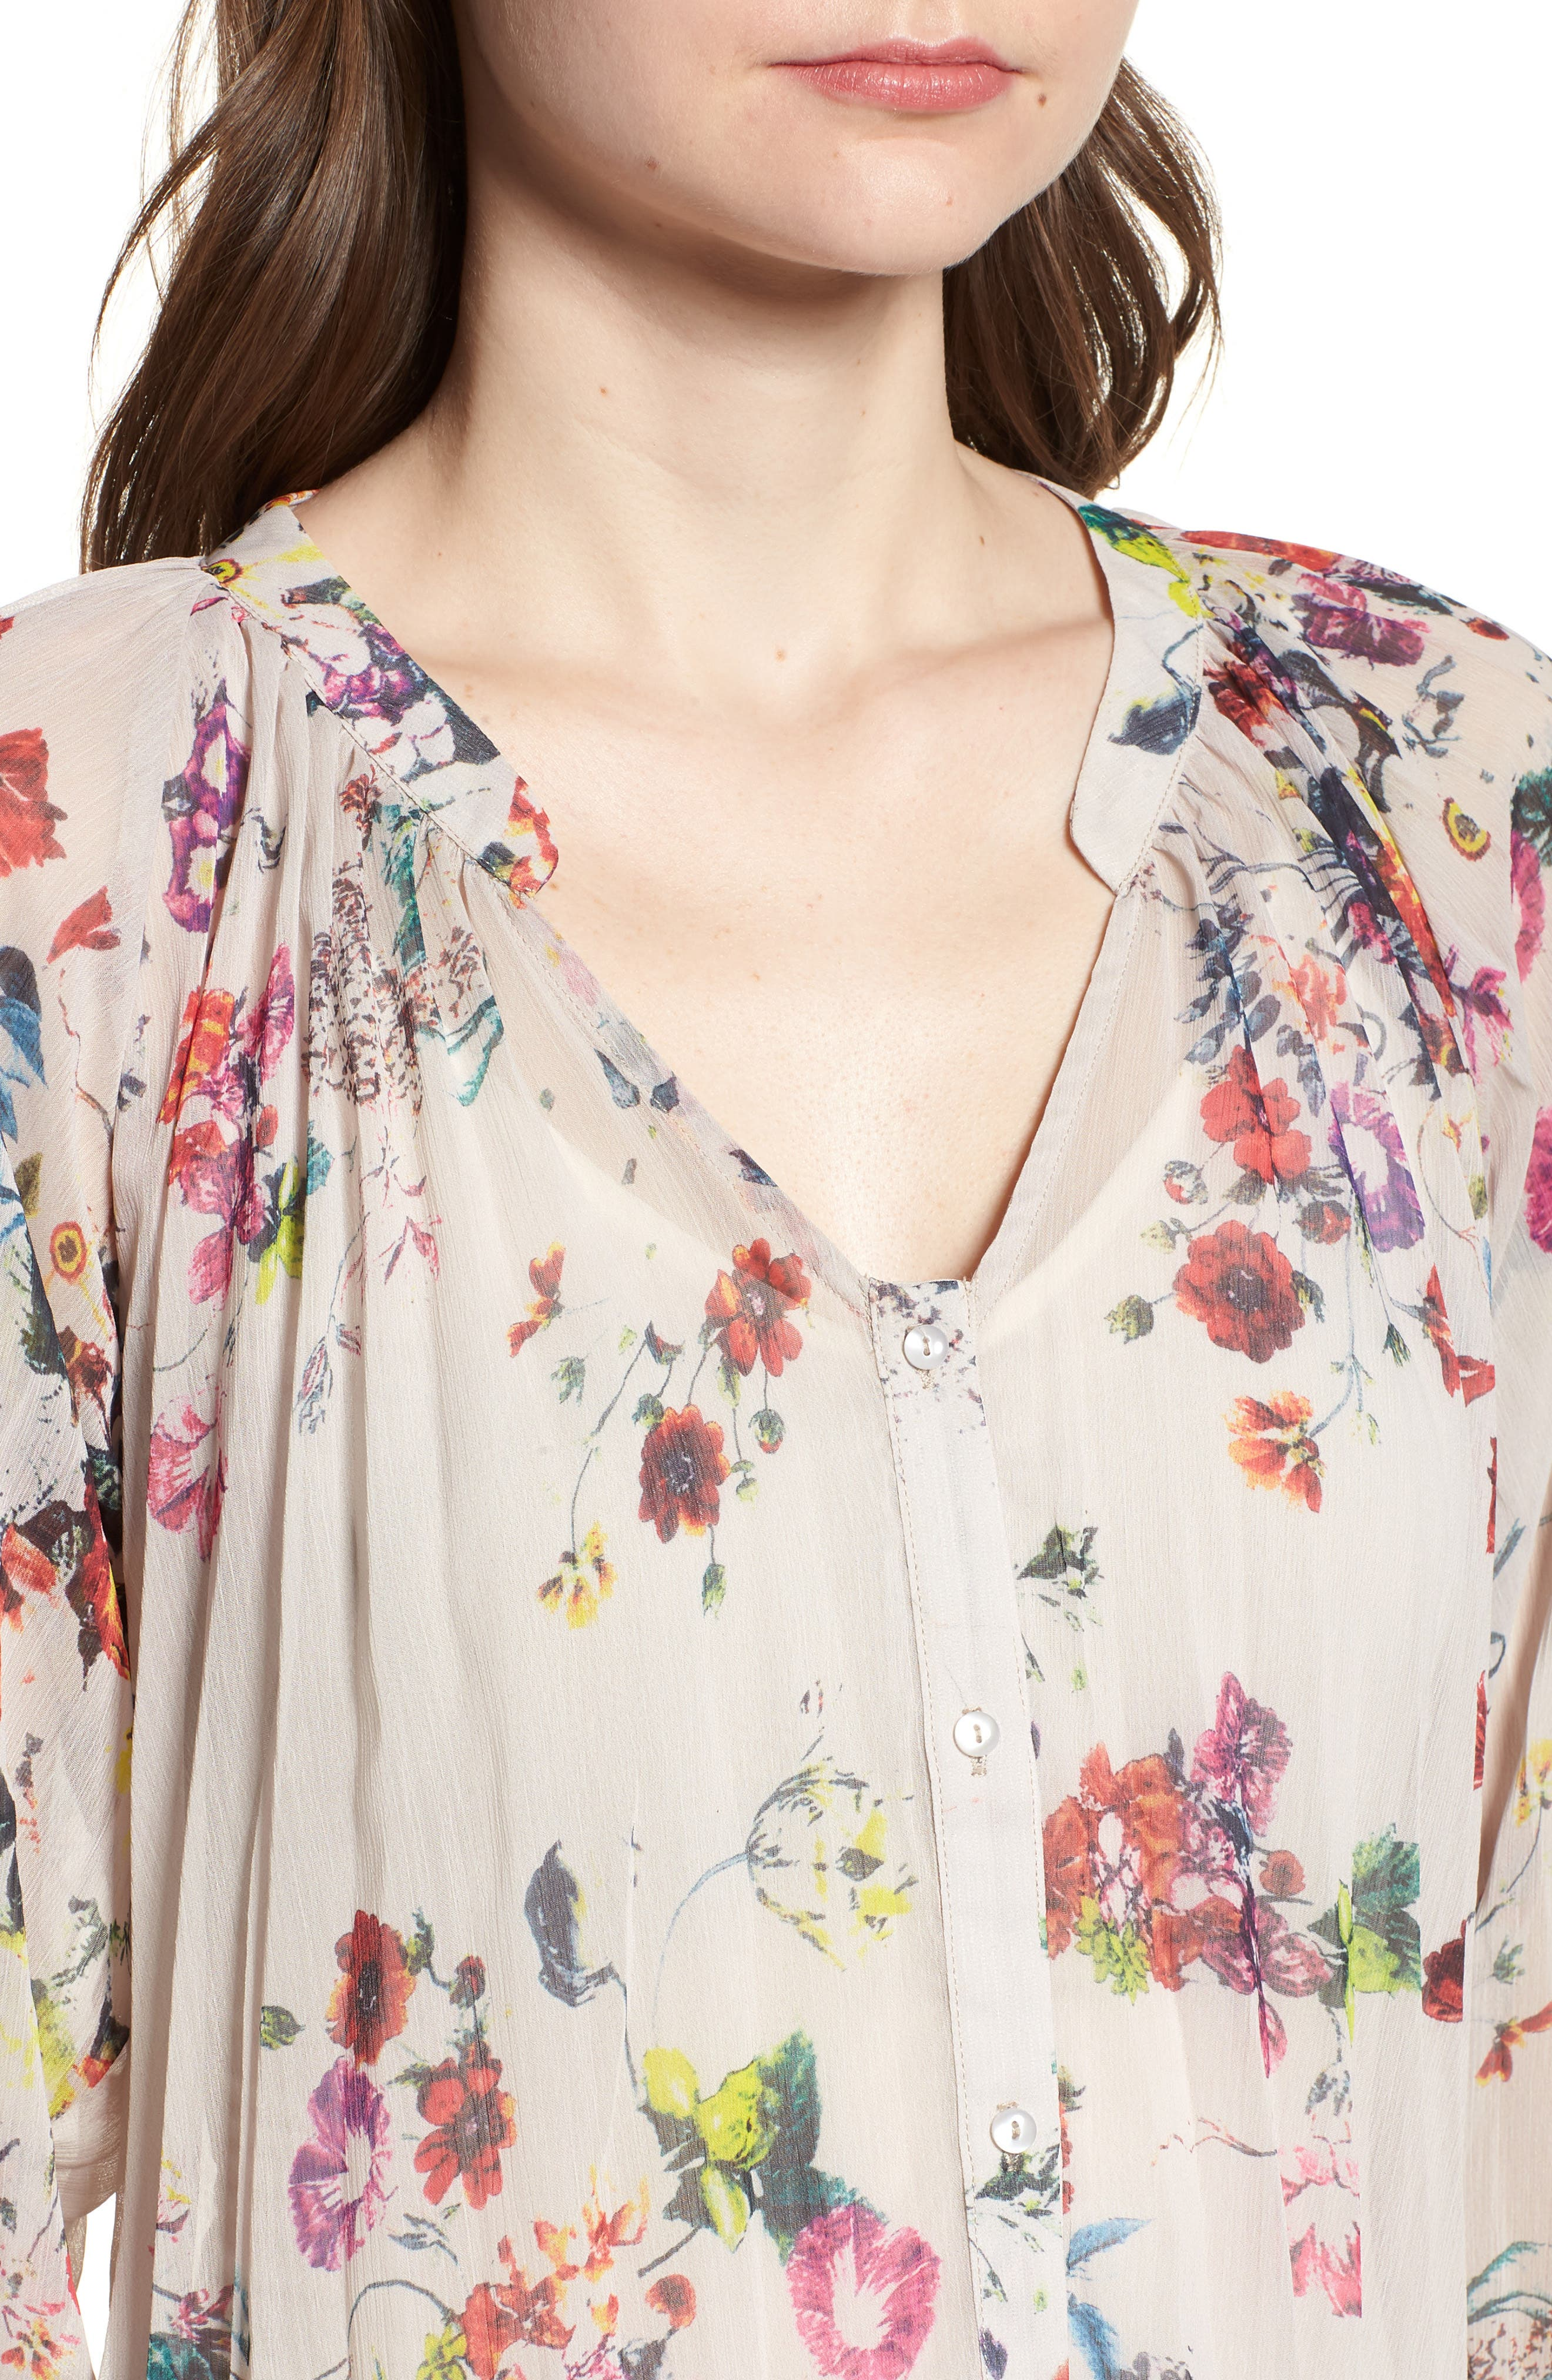 Bishop + Young Floral Pleated Top,                             Alternate thumbnail 4, color,                             Romance Print